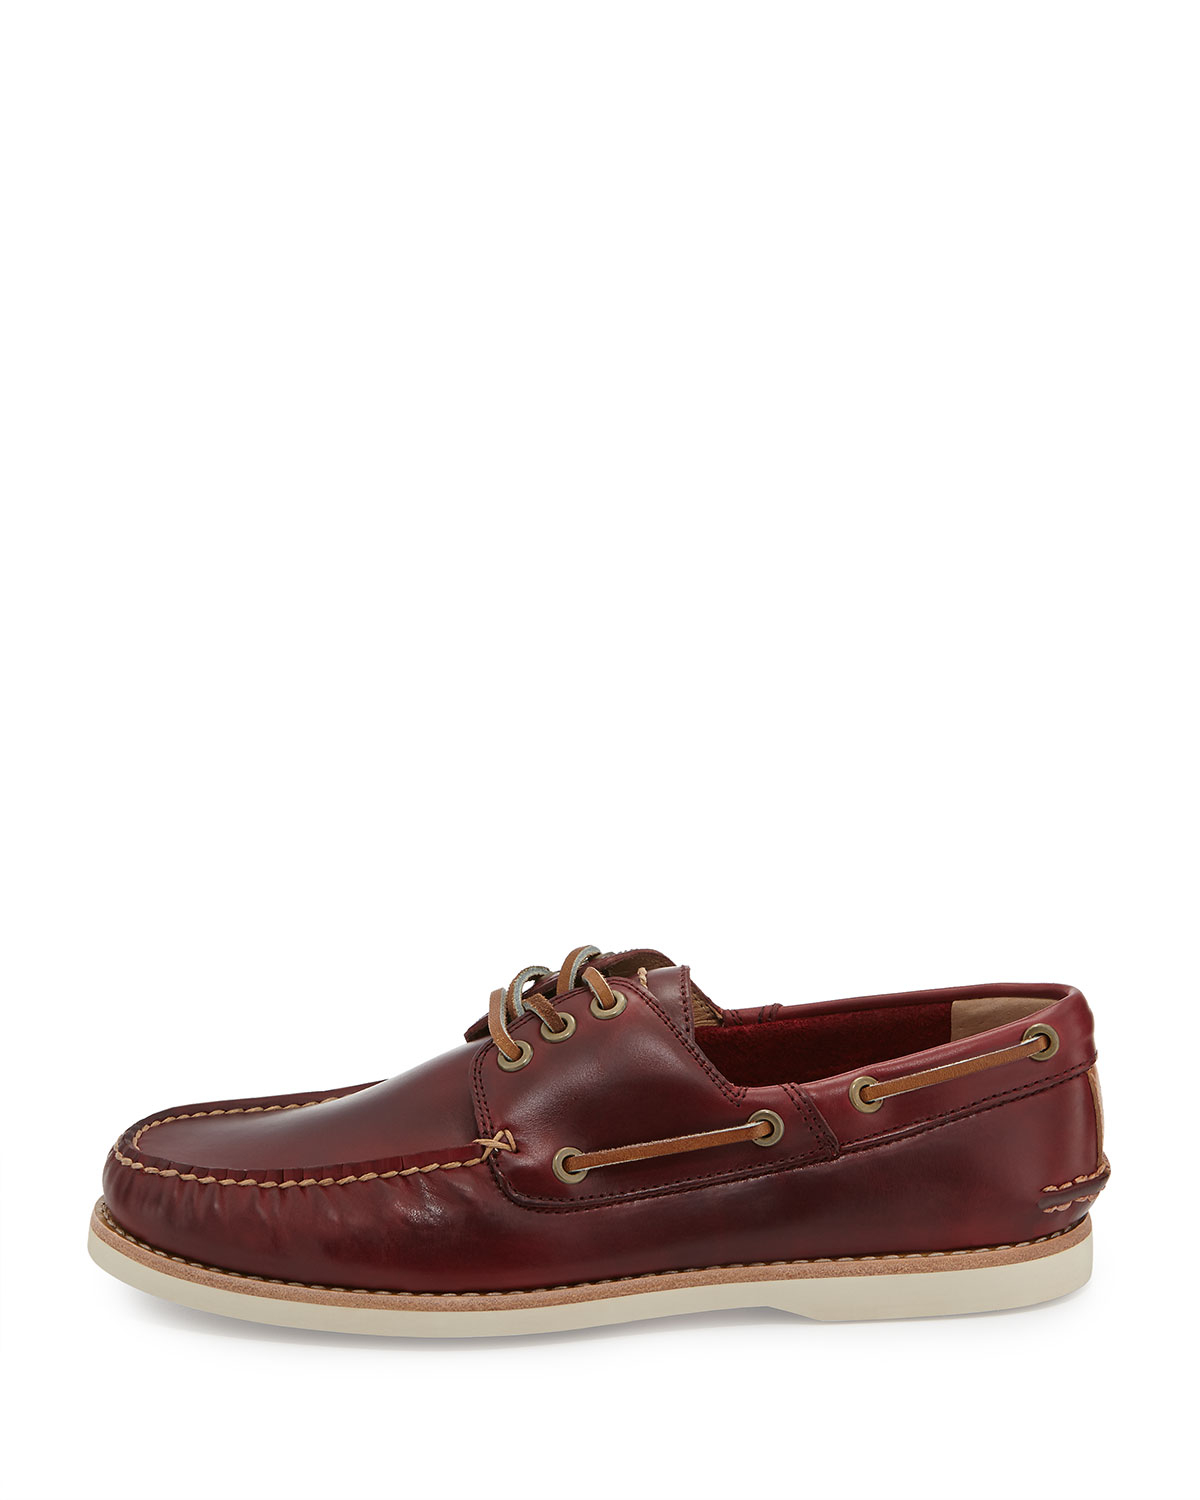 frye sully leather boat shoe burgundy in pink for